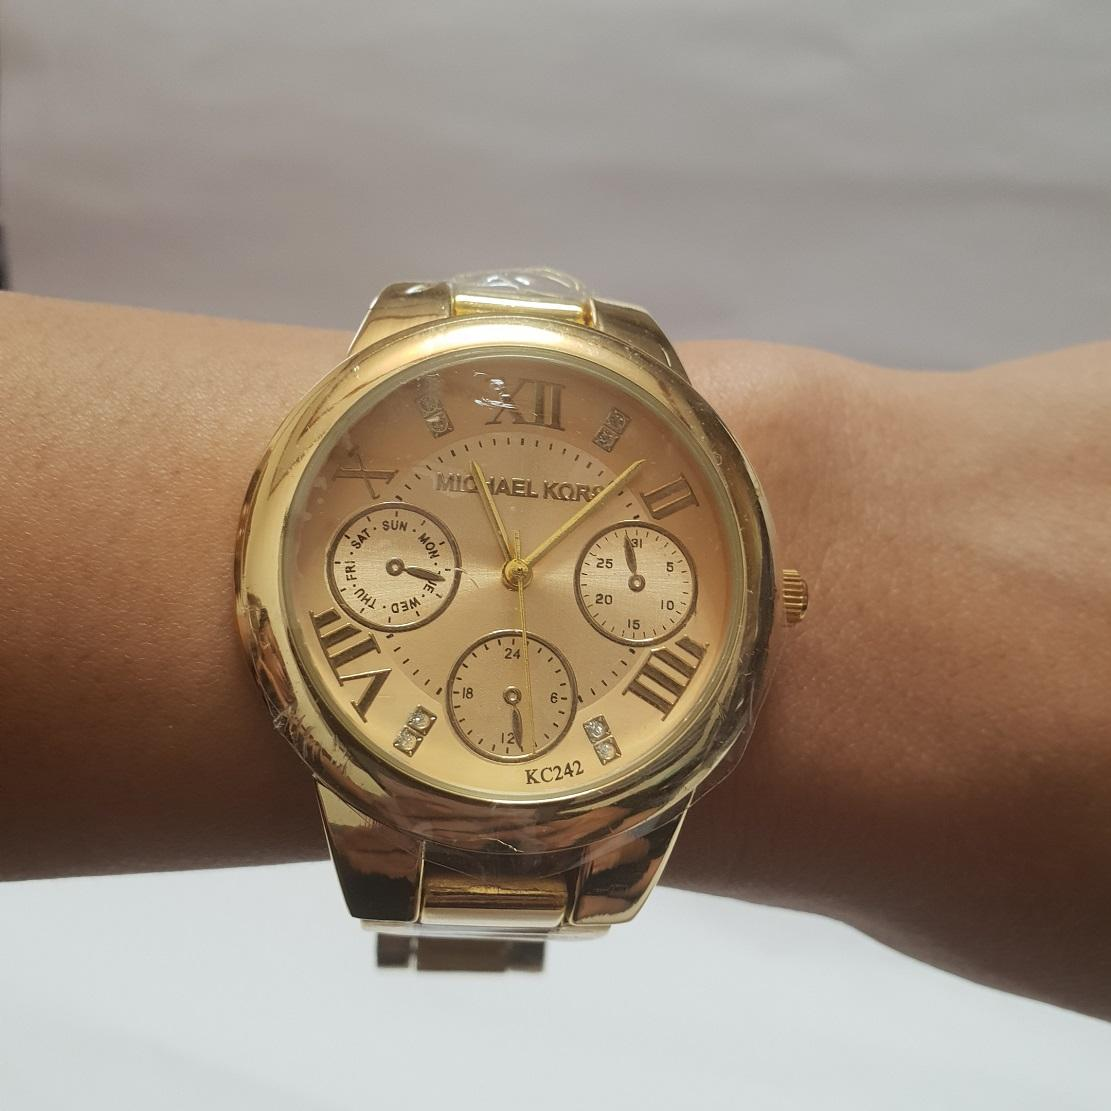 Michael Kors Philippines Watches For Women Sale 3131 Stainless Designer Watch